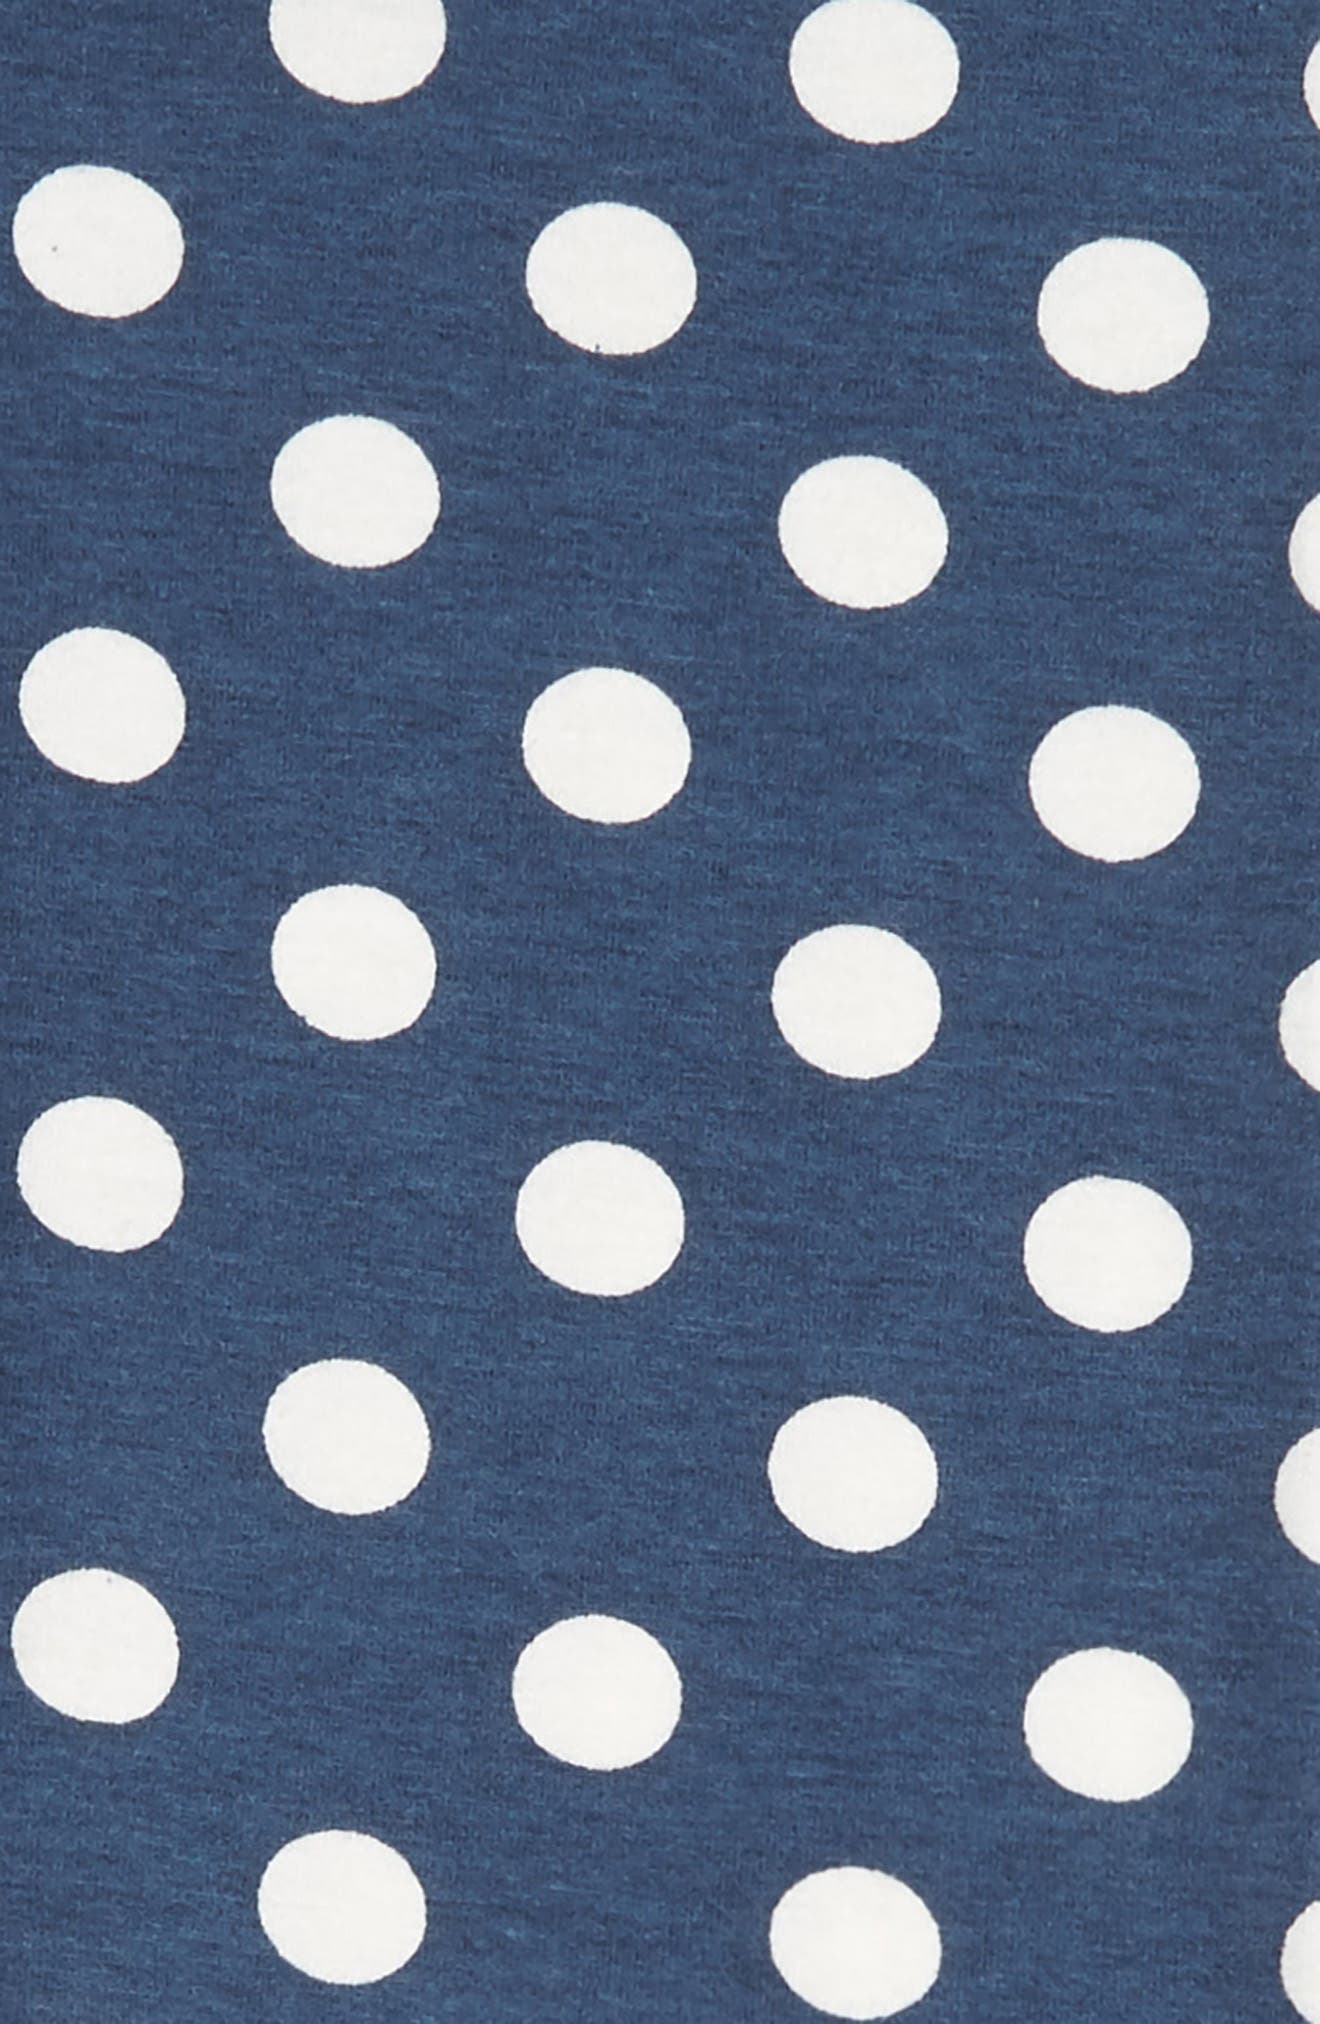 TUCKER + TATE, 'Core' Print Leggings, Alternate thumbnail 2, color, NAVY DENIM DOT